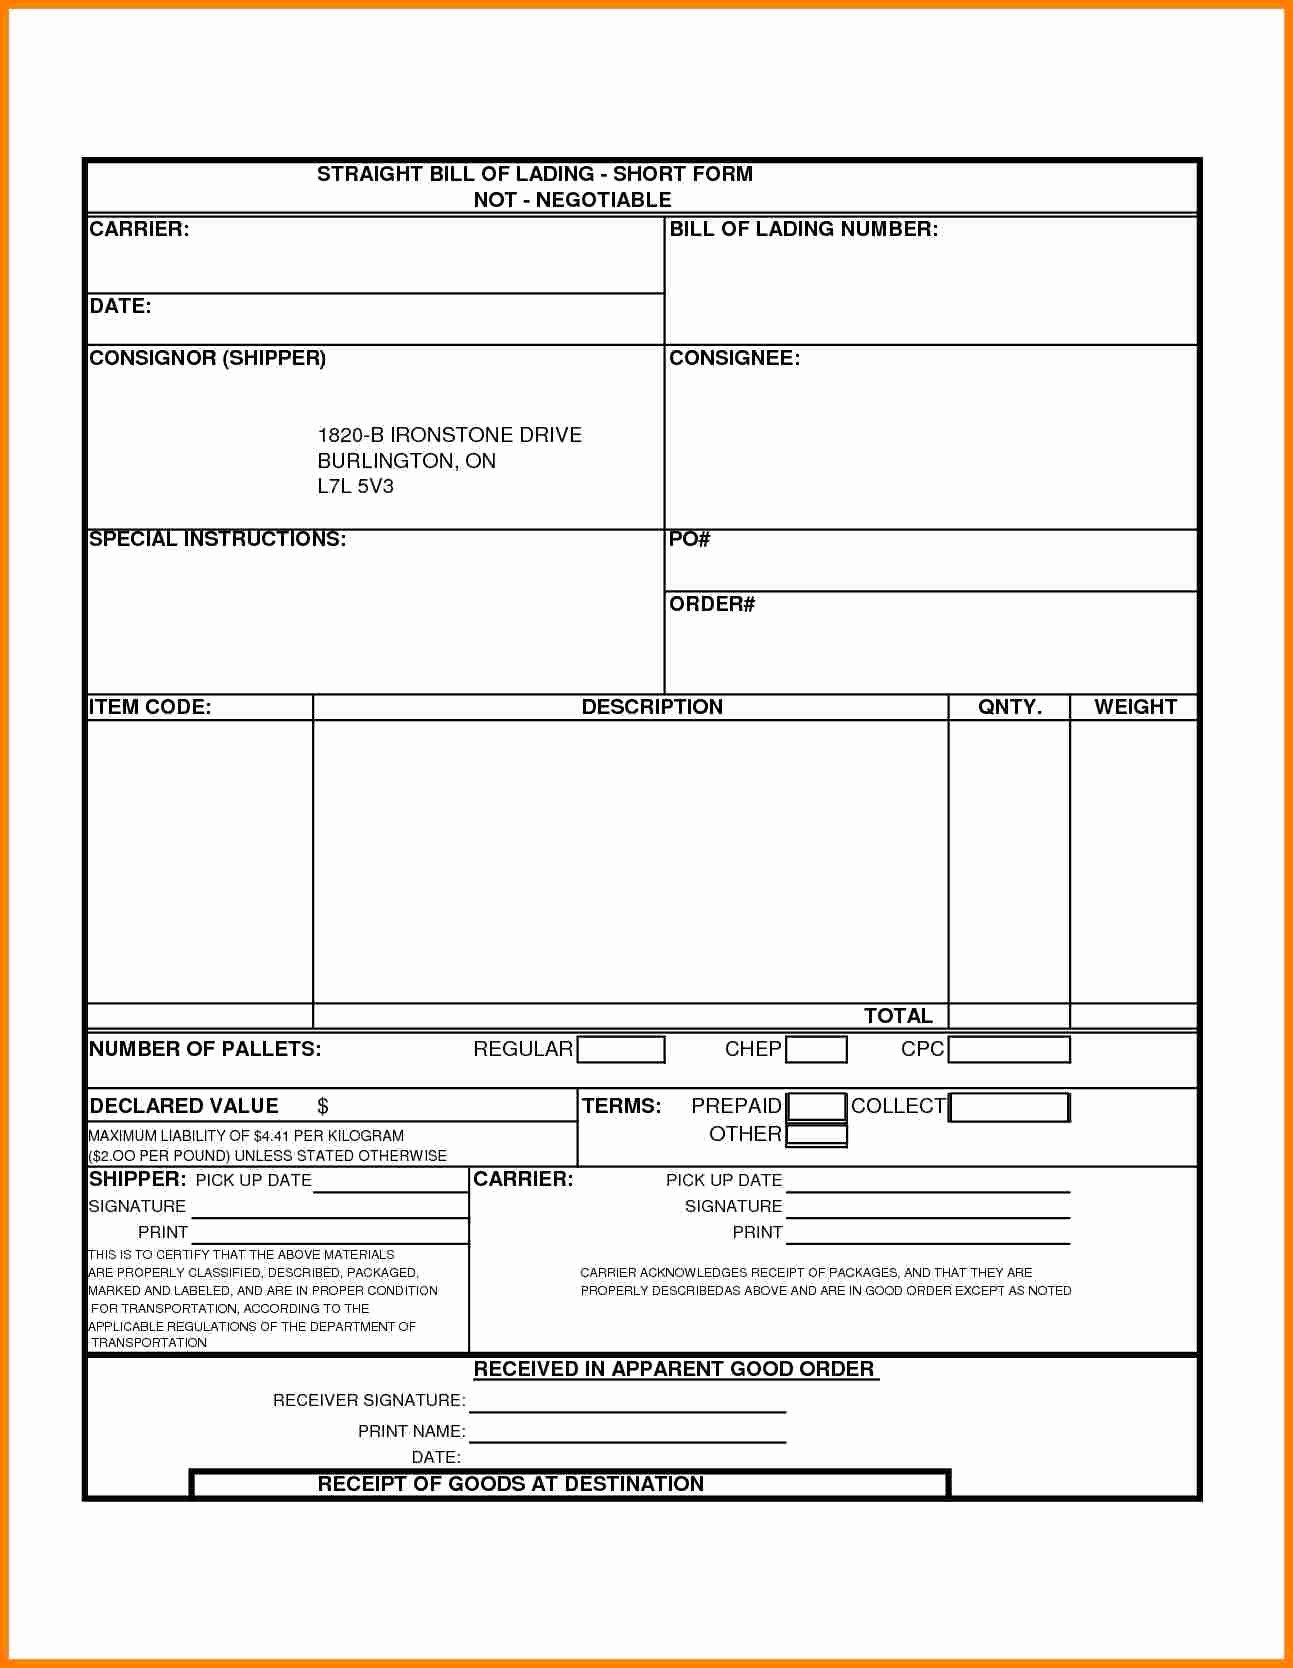 Straight Bill Of Lading Template Beautiful 6 Printable Bill Of Lading Short form